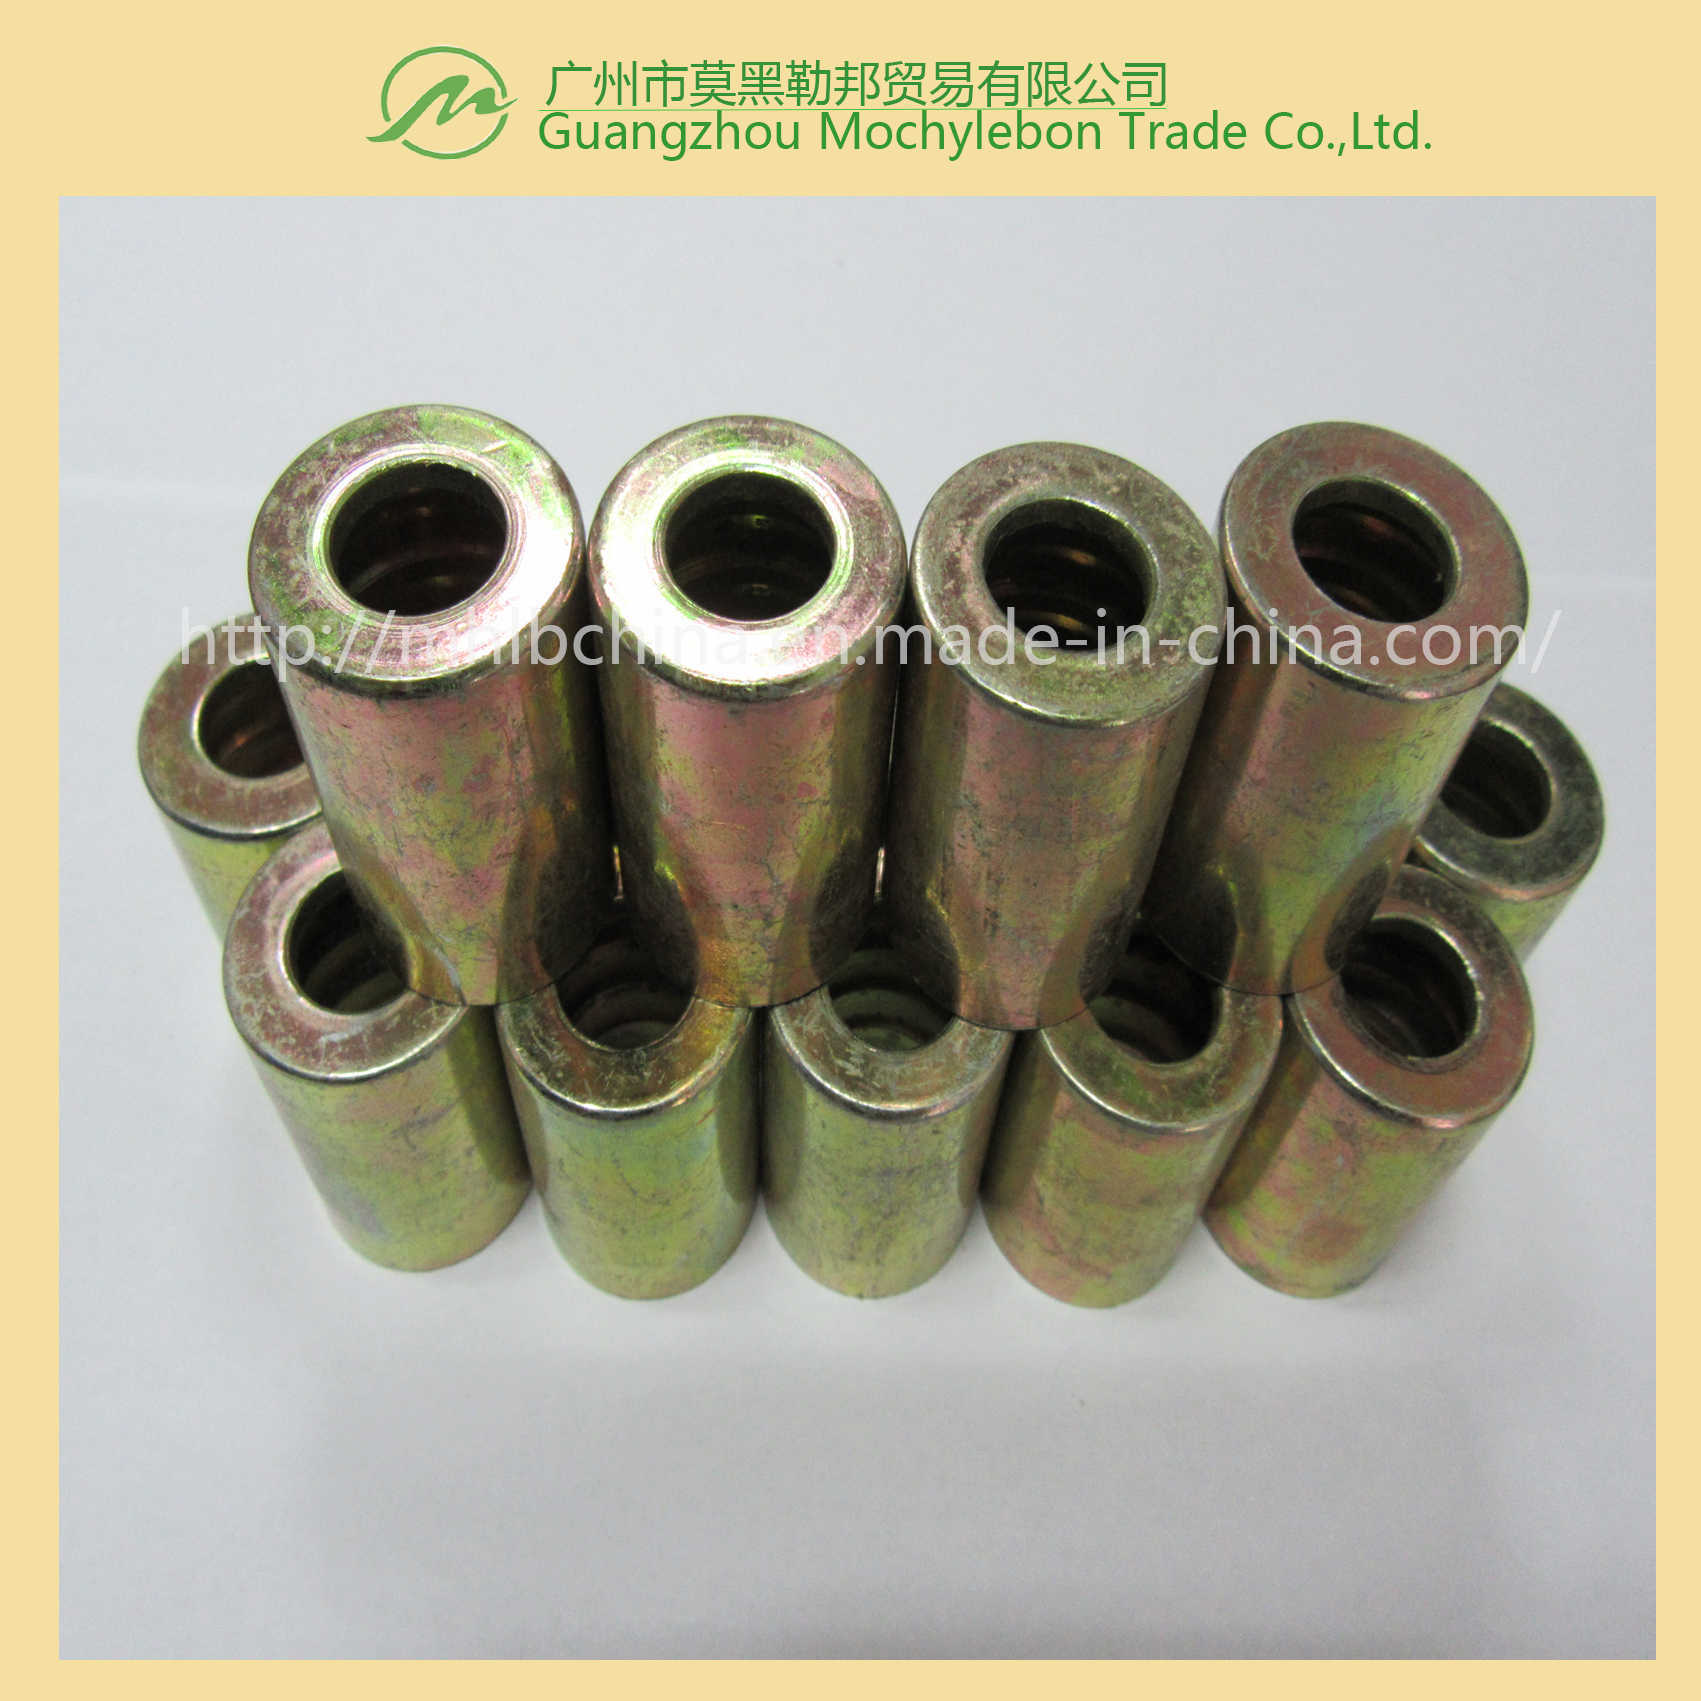 Hydraulic Fittings/Sleeves/Ferrules/Fittings for Hydraulic Hoses pictures & photos